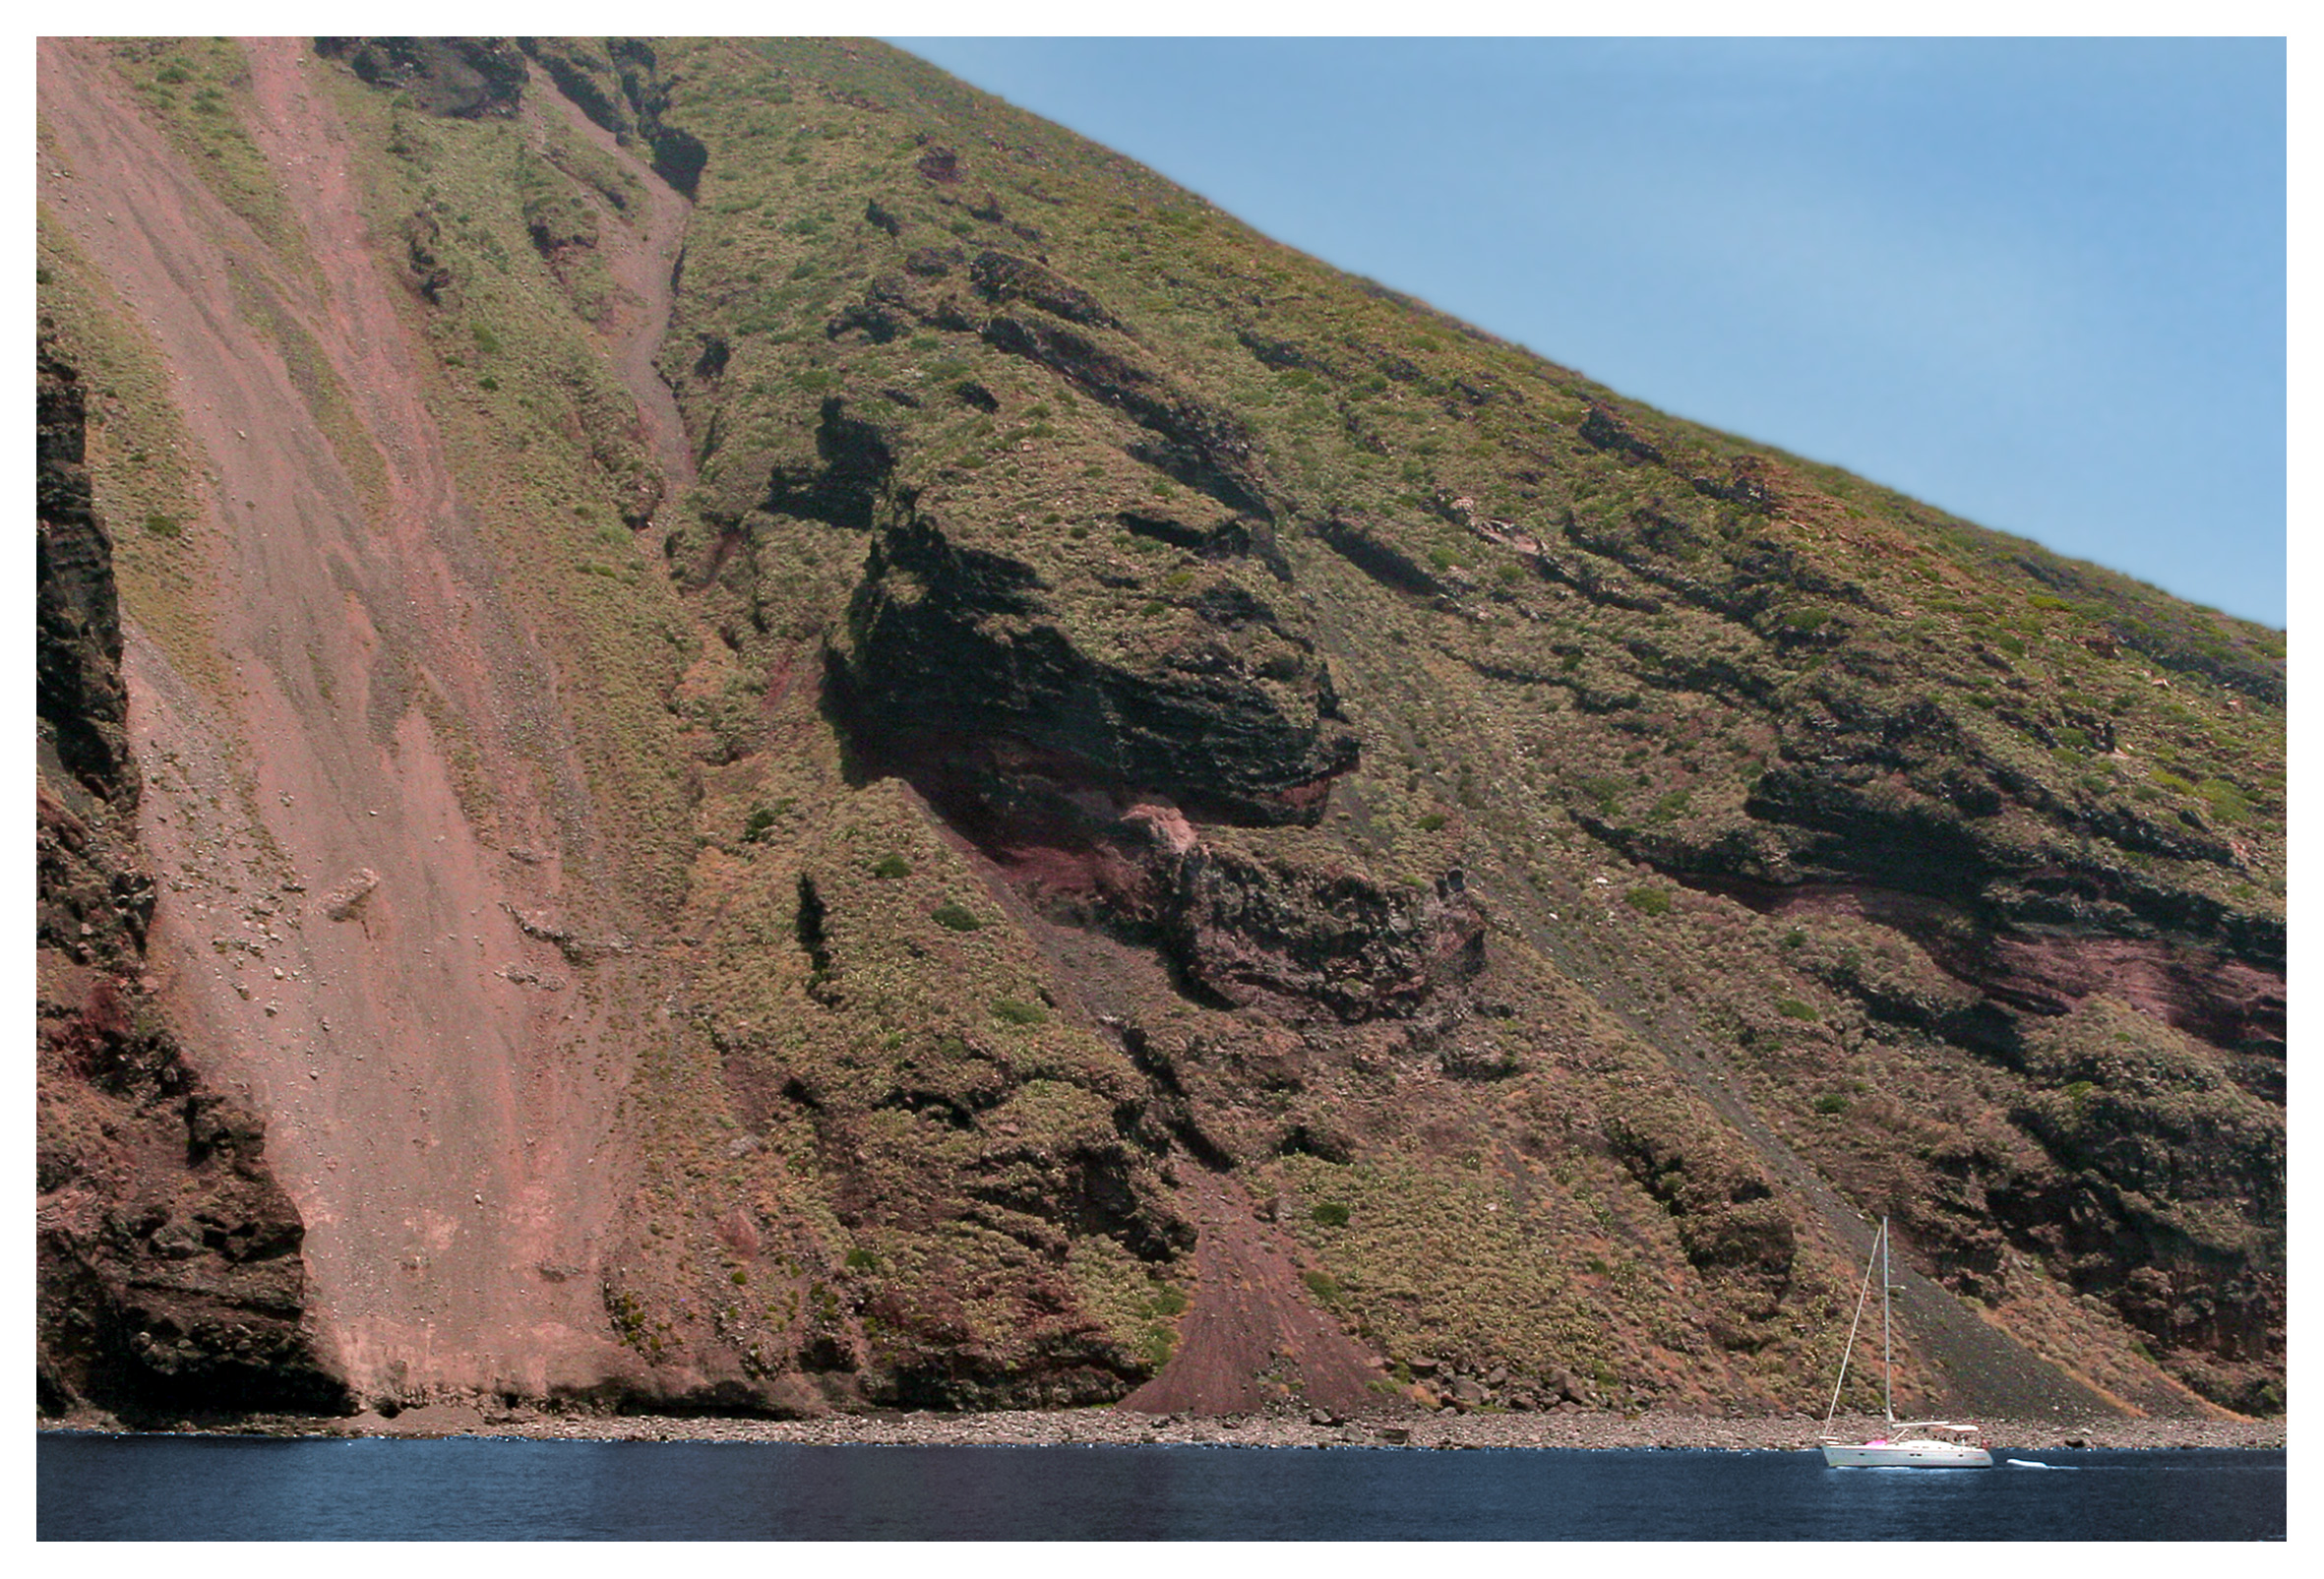 Yachting photography: A yacht sailing close to a towering volcanic hillside at Filicoudi, Aeolian Islands, Sicily